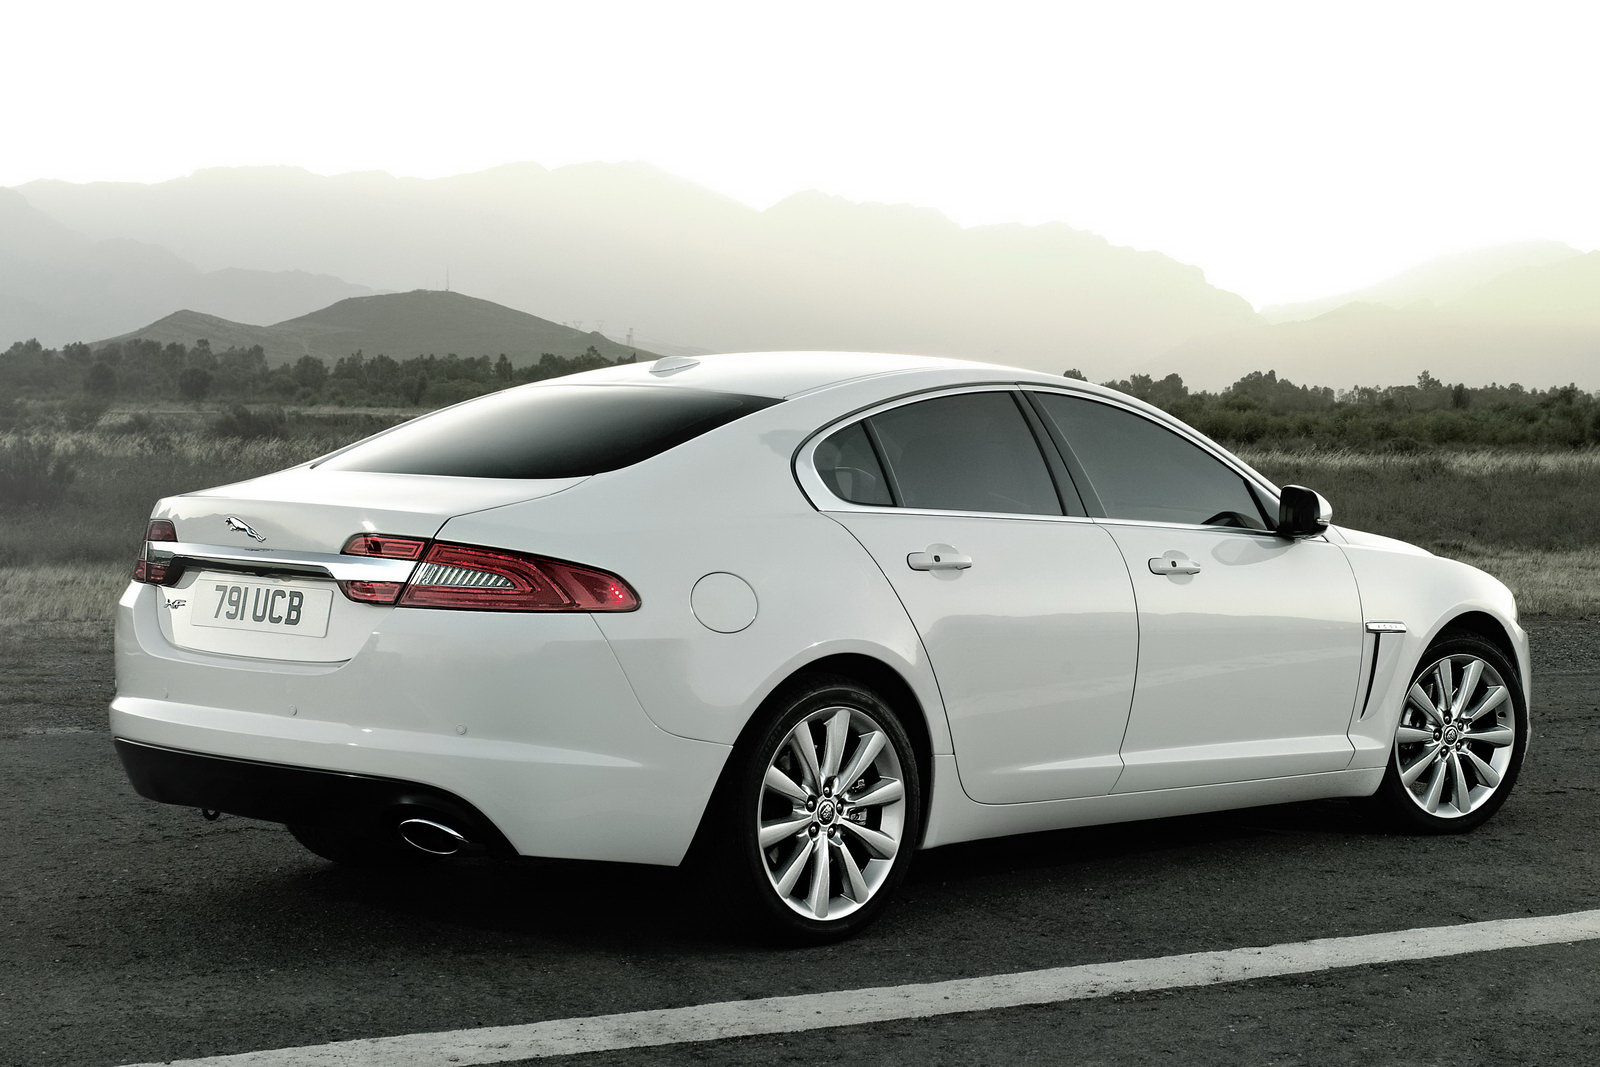 2012 Jaguar XF XFR 15 2012 Jaguar XF and XFR with Different Technical Specifications